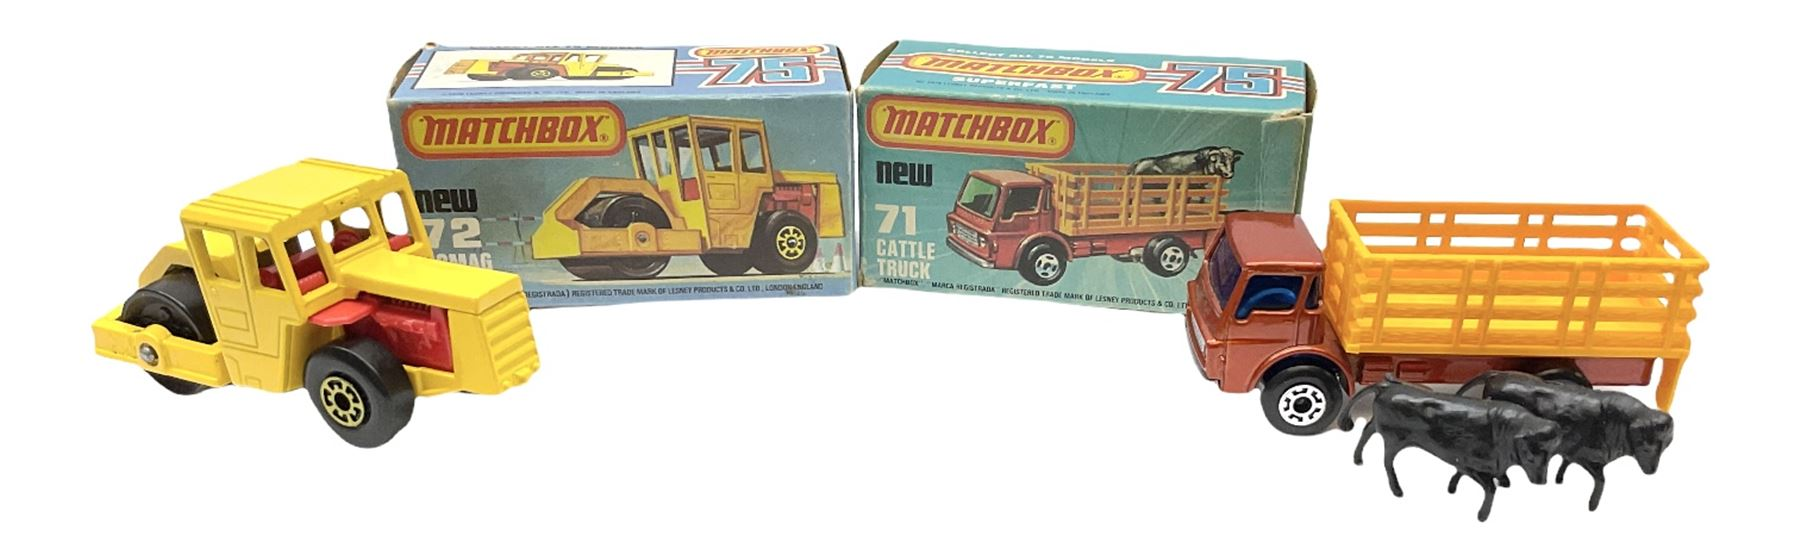 Matchbox/Superfast - nine '1-75' series models comprising 64d Fire Chief car - Image 5 of 8